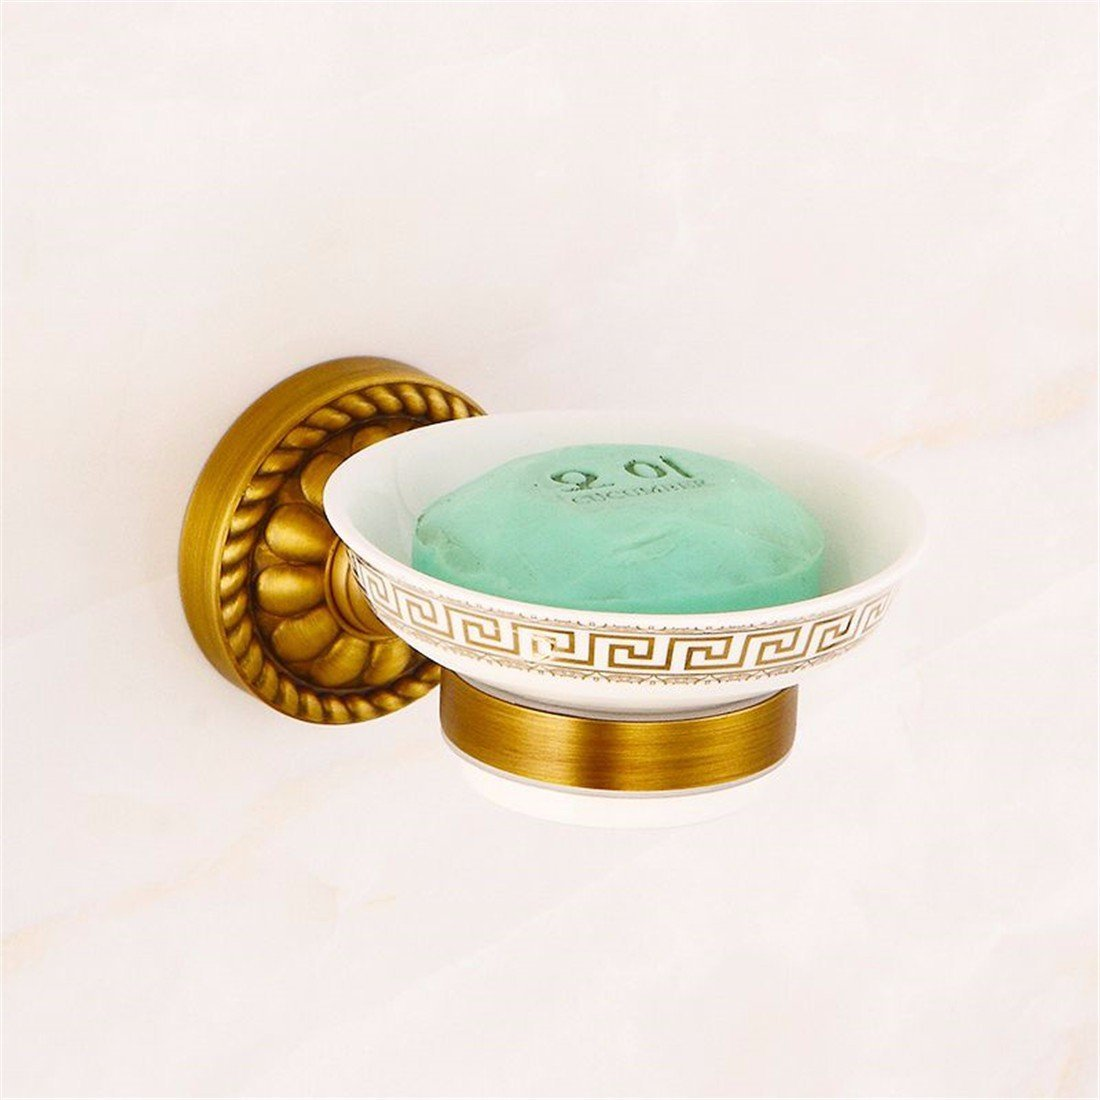 LAONA Euro-copper antique copper-colored carved round base mount kit in the Bathroom Towel Ring, Soap Dish